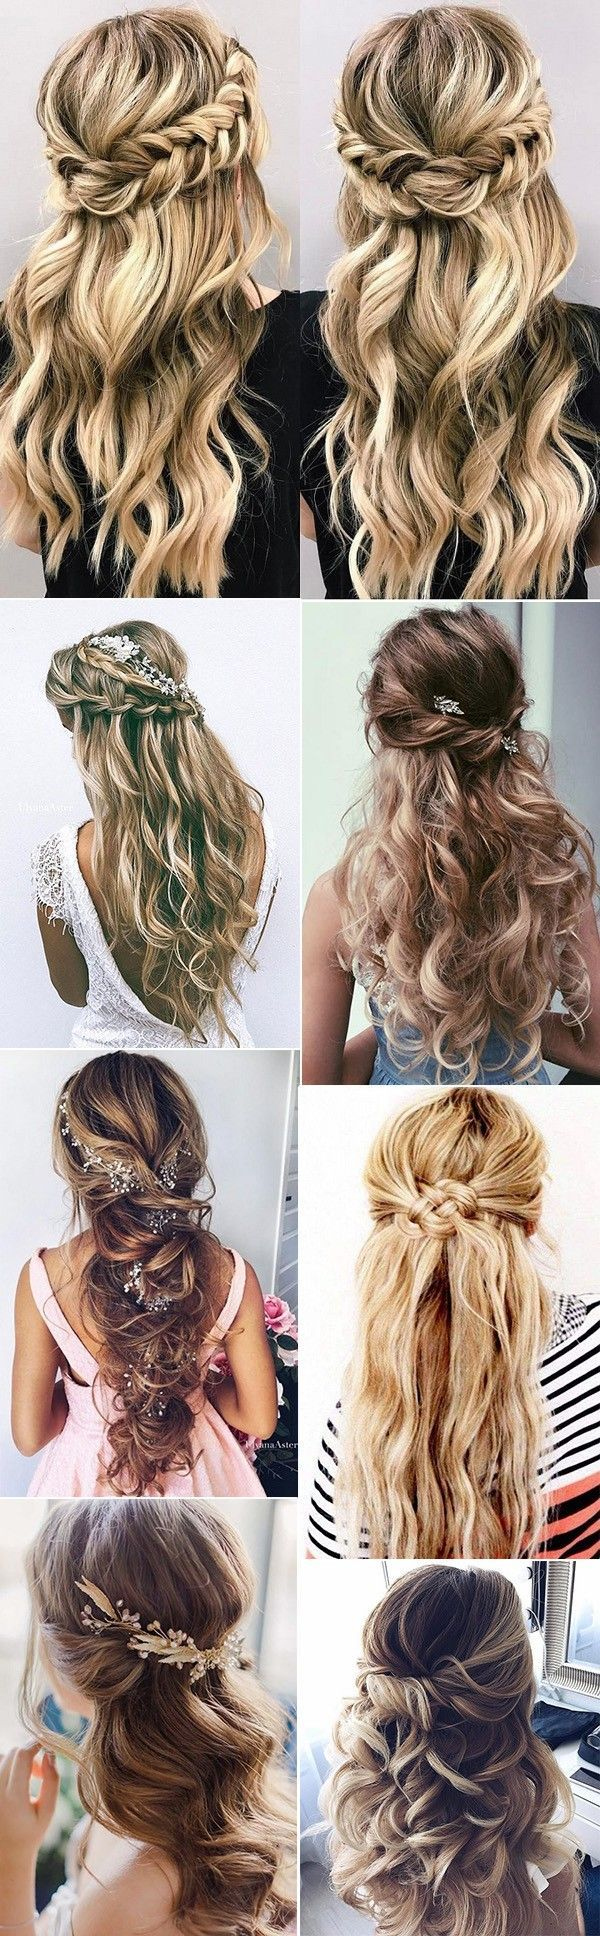 15 Wedding Hairstyles For LongHair